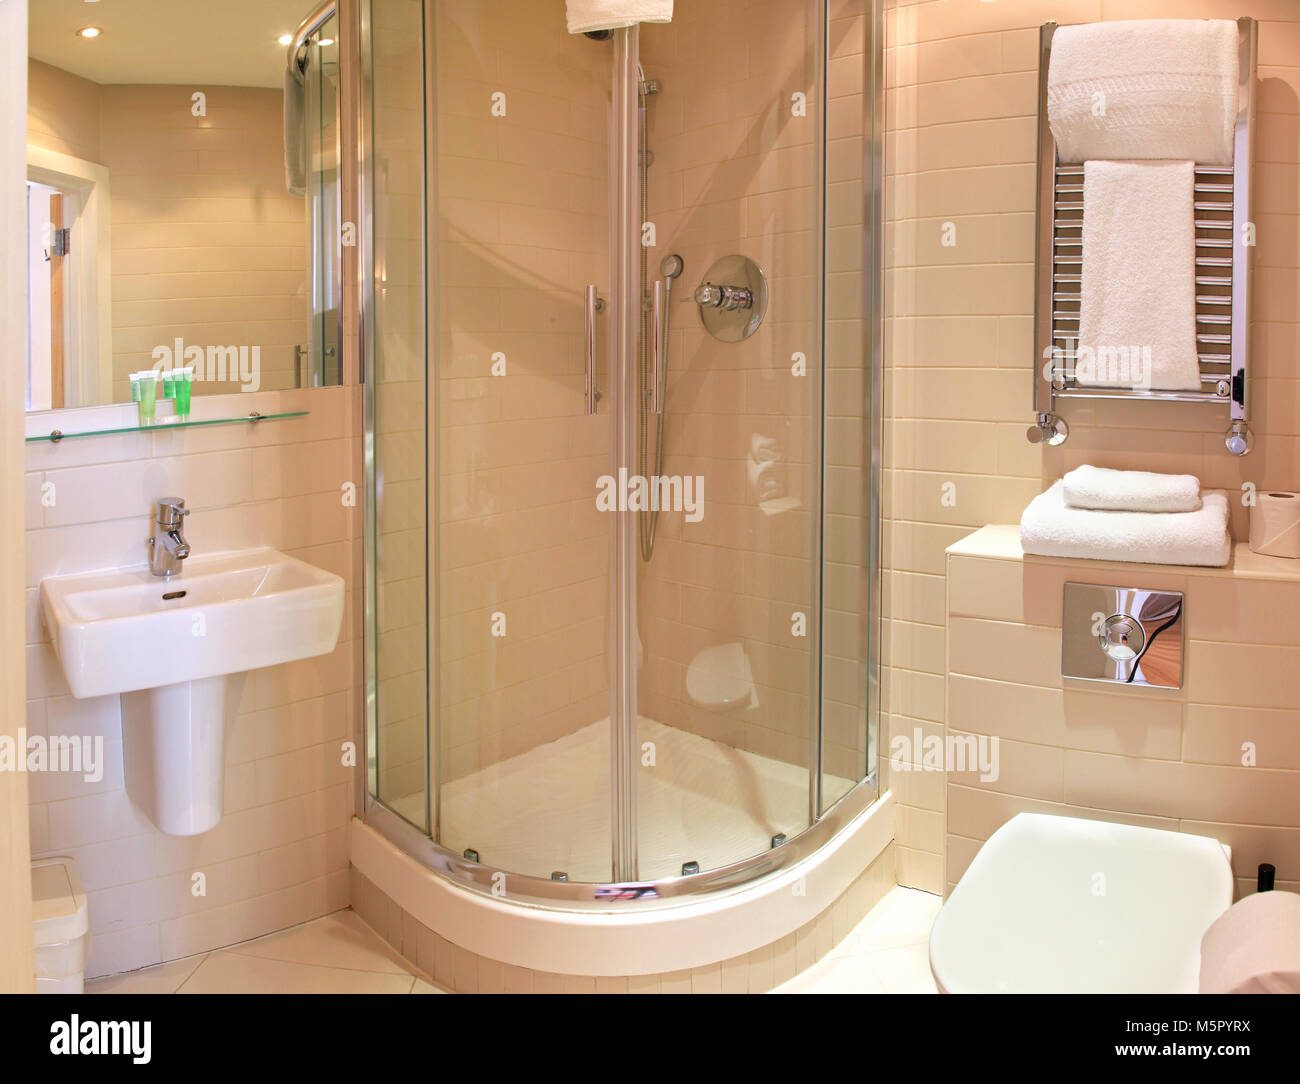 Minimalistic bathroom interior with glass shower cabin Stock Photo ...